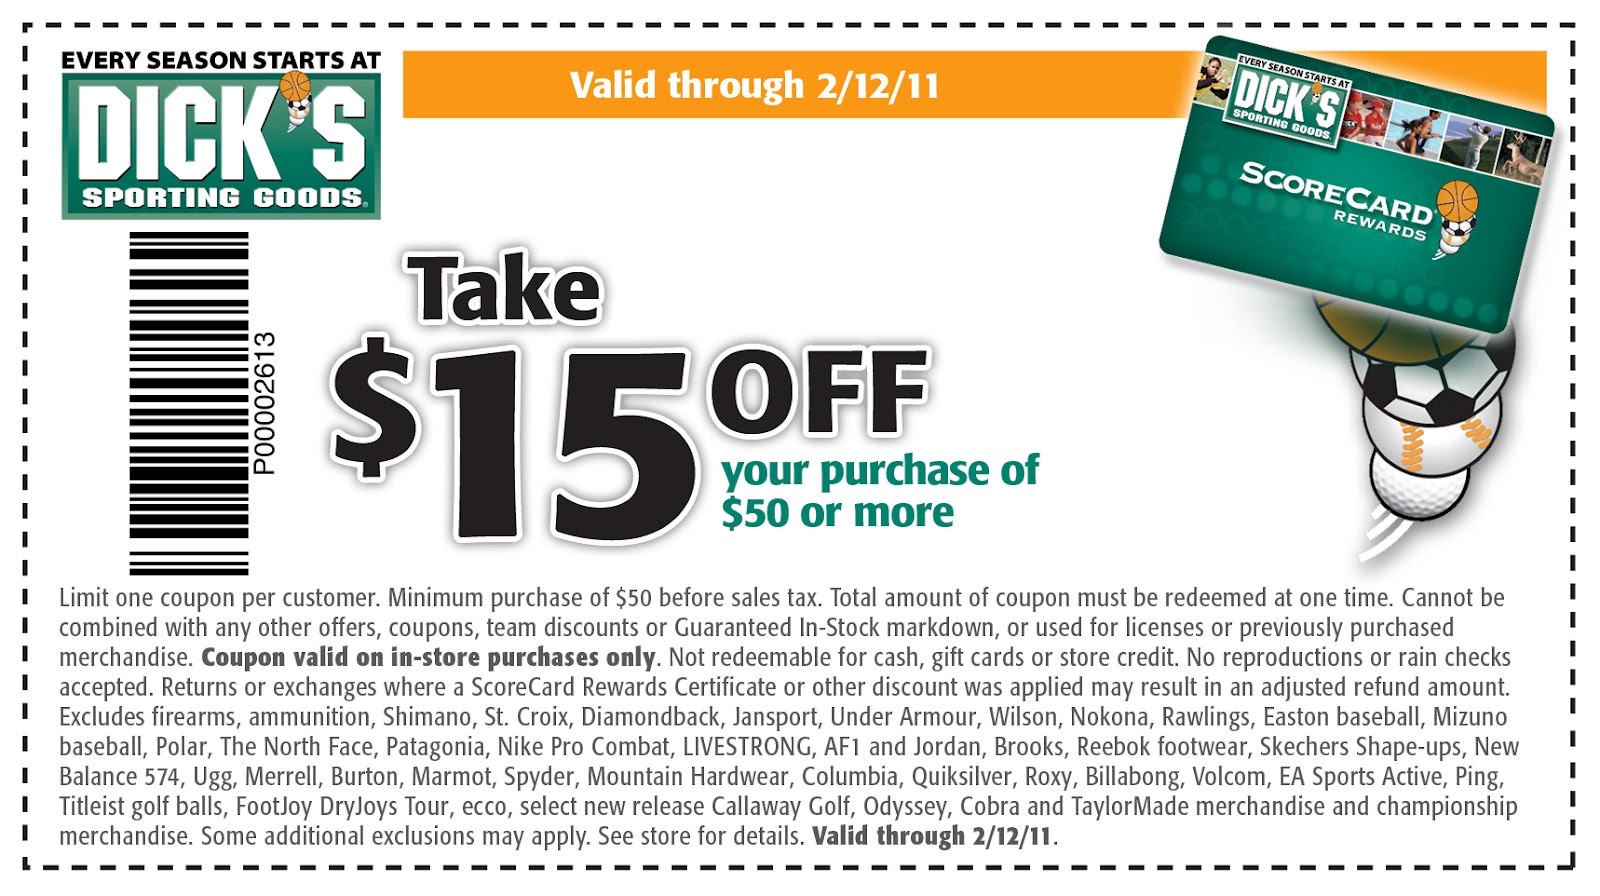 Home goods coupon code